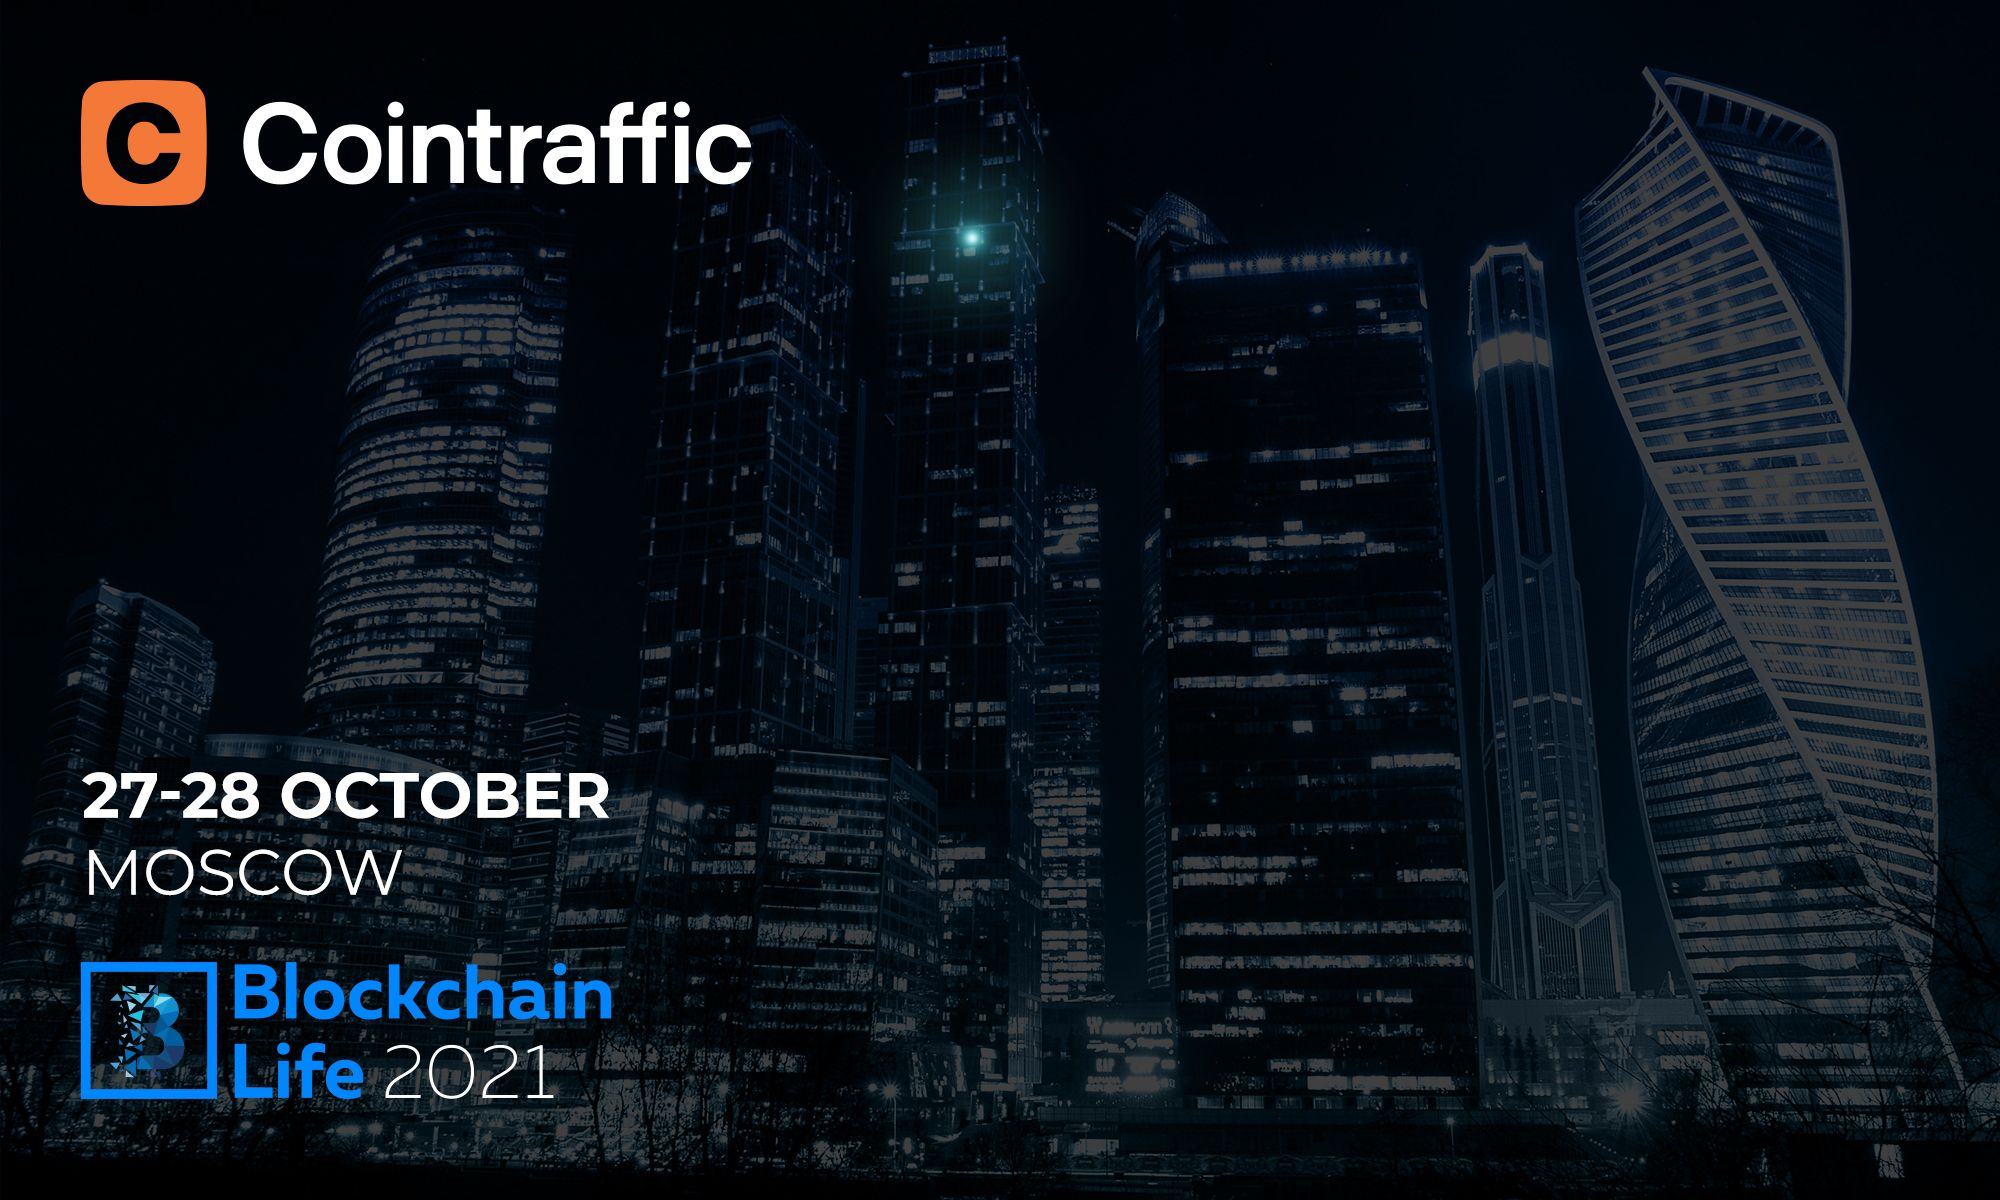 Cointraffic to Join World's Crypto Leaders at Blockchain Life 2021